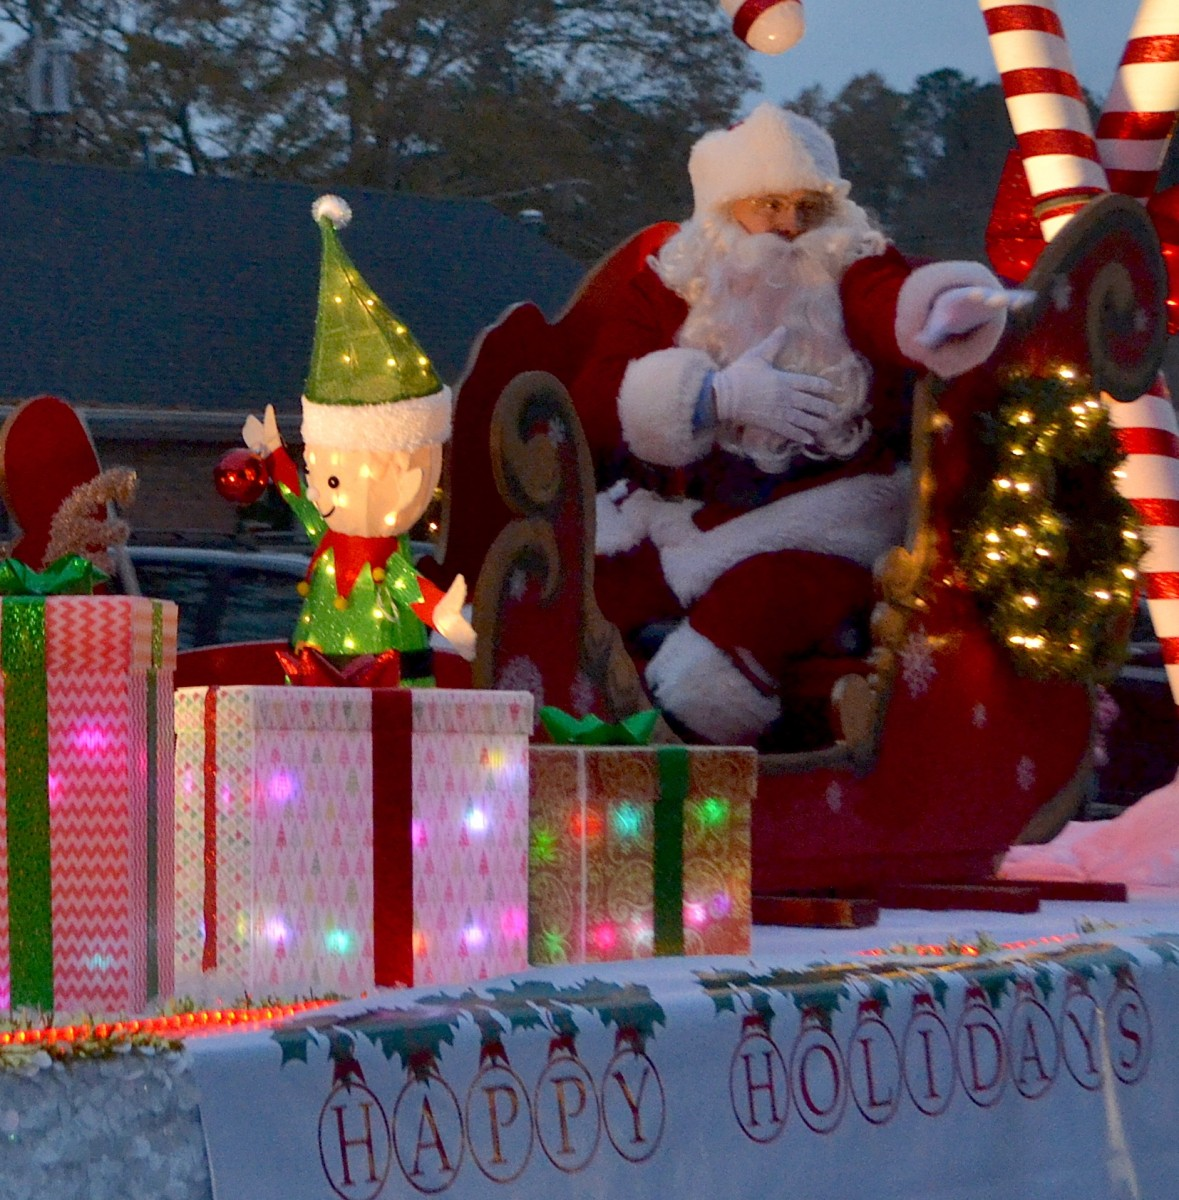 Gray Court Christmas Parade 2021 Christmas Parades Canceled In Laurens Clinton Gray Court The Laurens County Advertiser